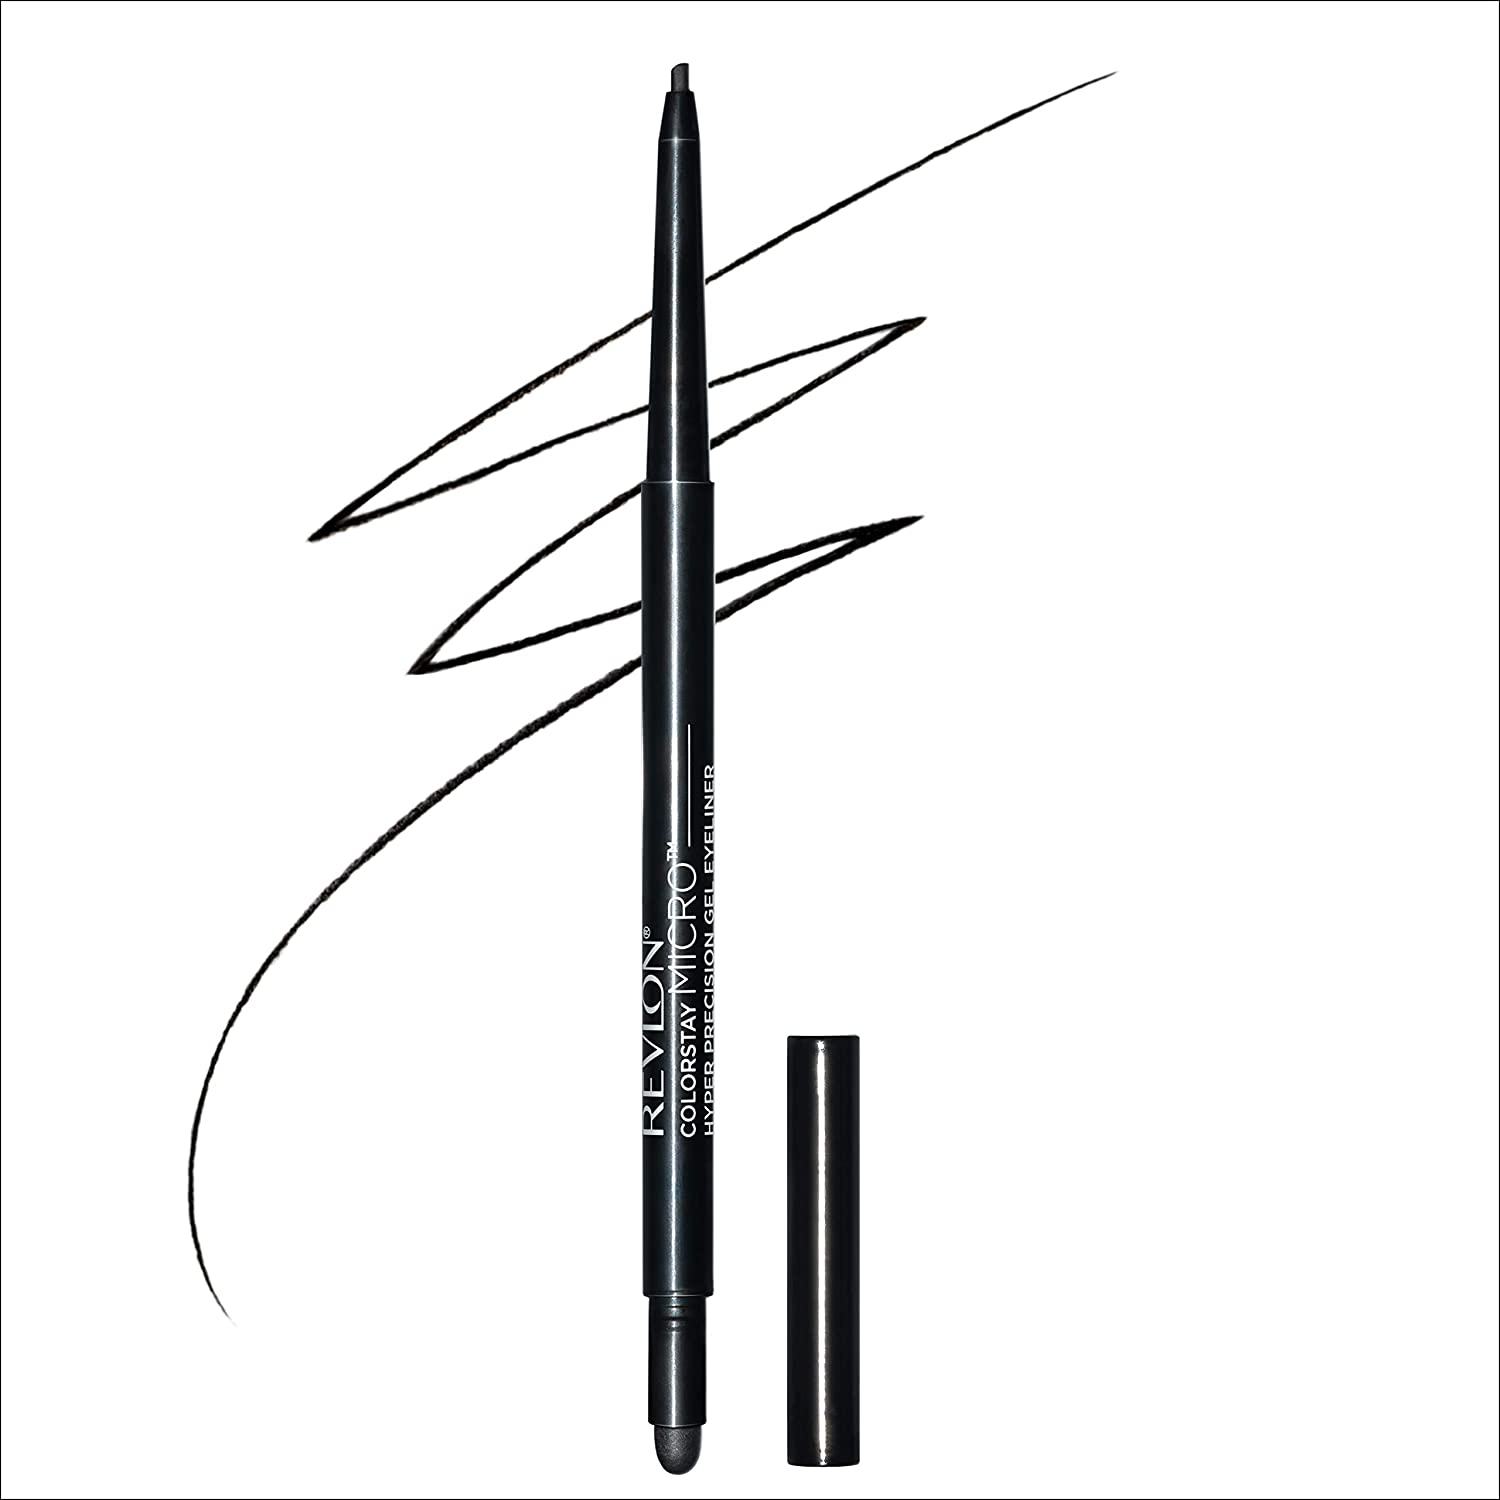 Revlon Colorstay Micro hyper Precision Gel Eyeliner, Waterproof, Long wearing, 0.009 Oz, Black